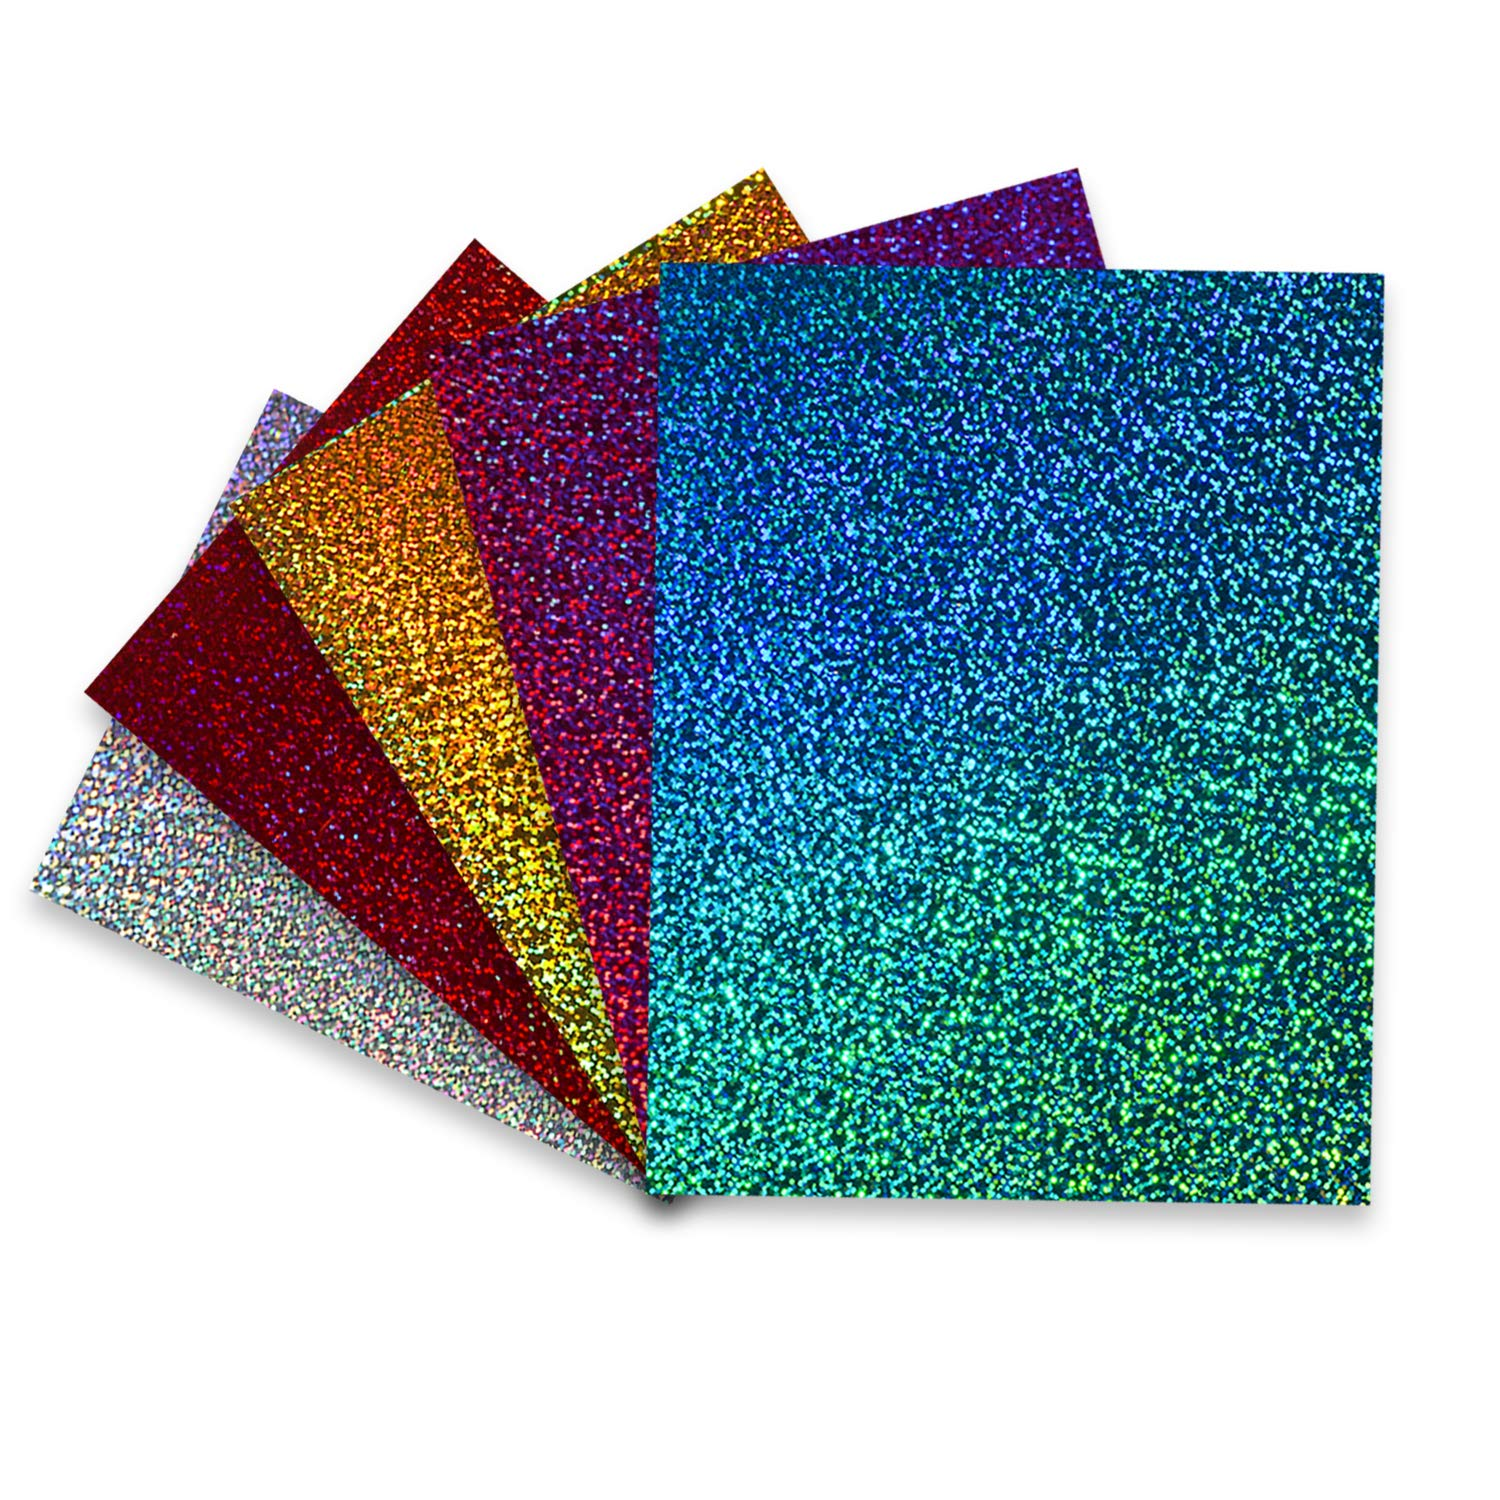 TECKWRAP Shining Laser Heat Transfer Vinyl Holographic Glitter Iron On Vinyl Sheets for T-Shirts and Iron On Vinyl 12x10 6 Sheets Red HTV